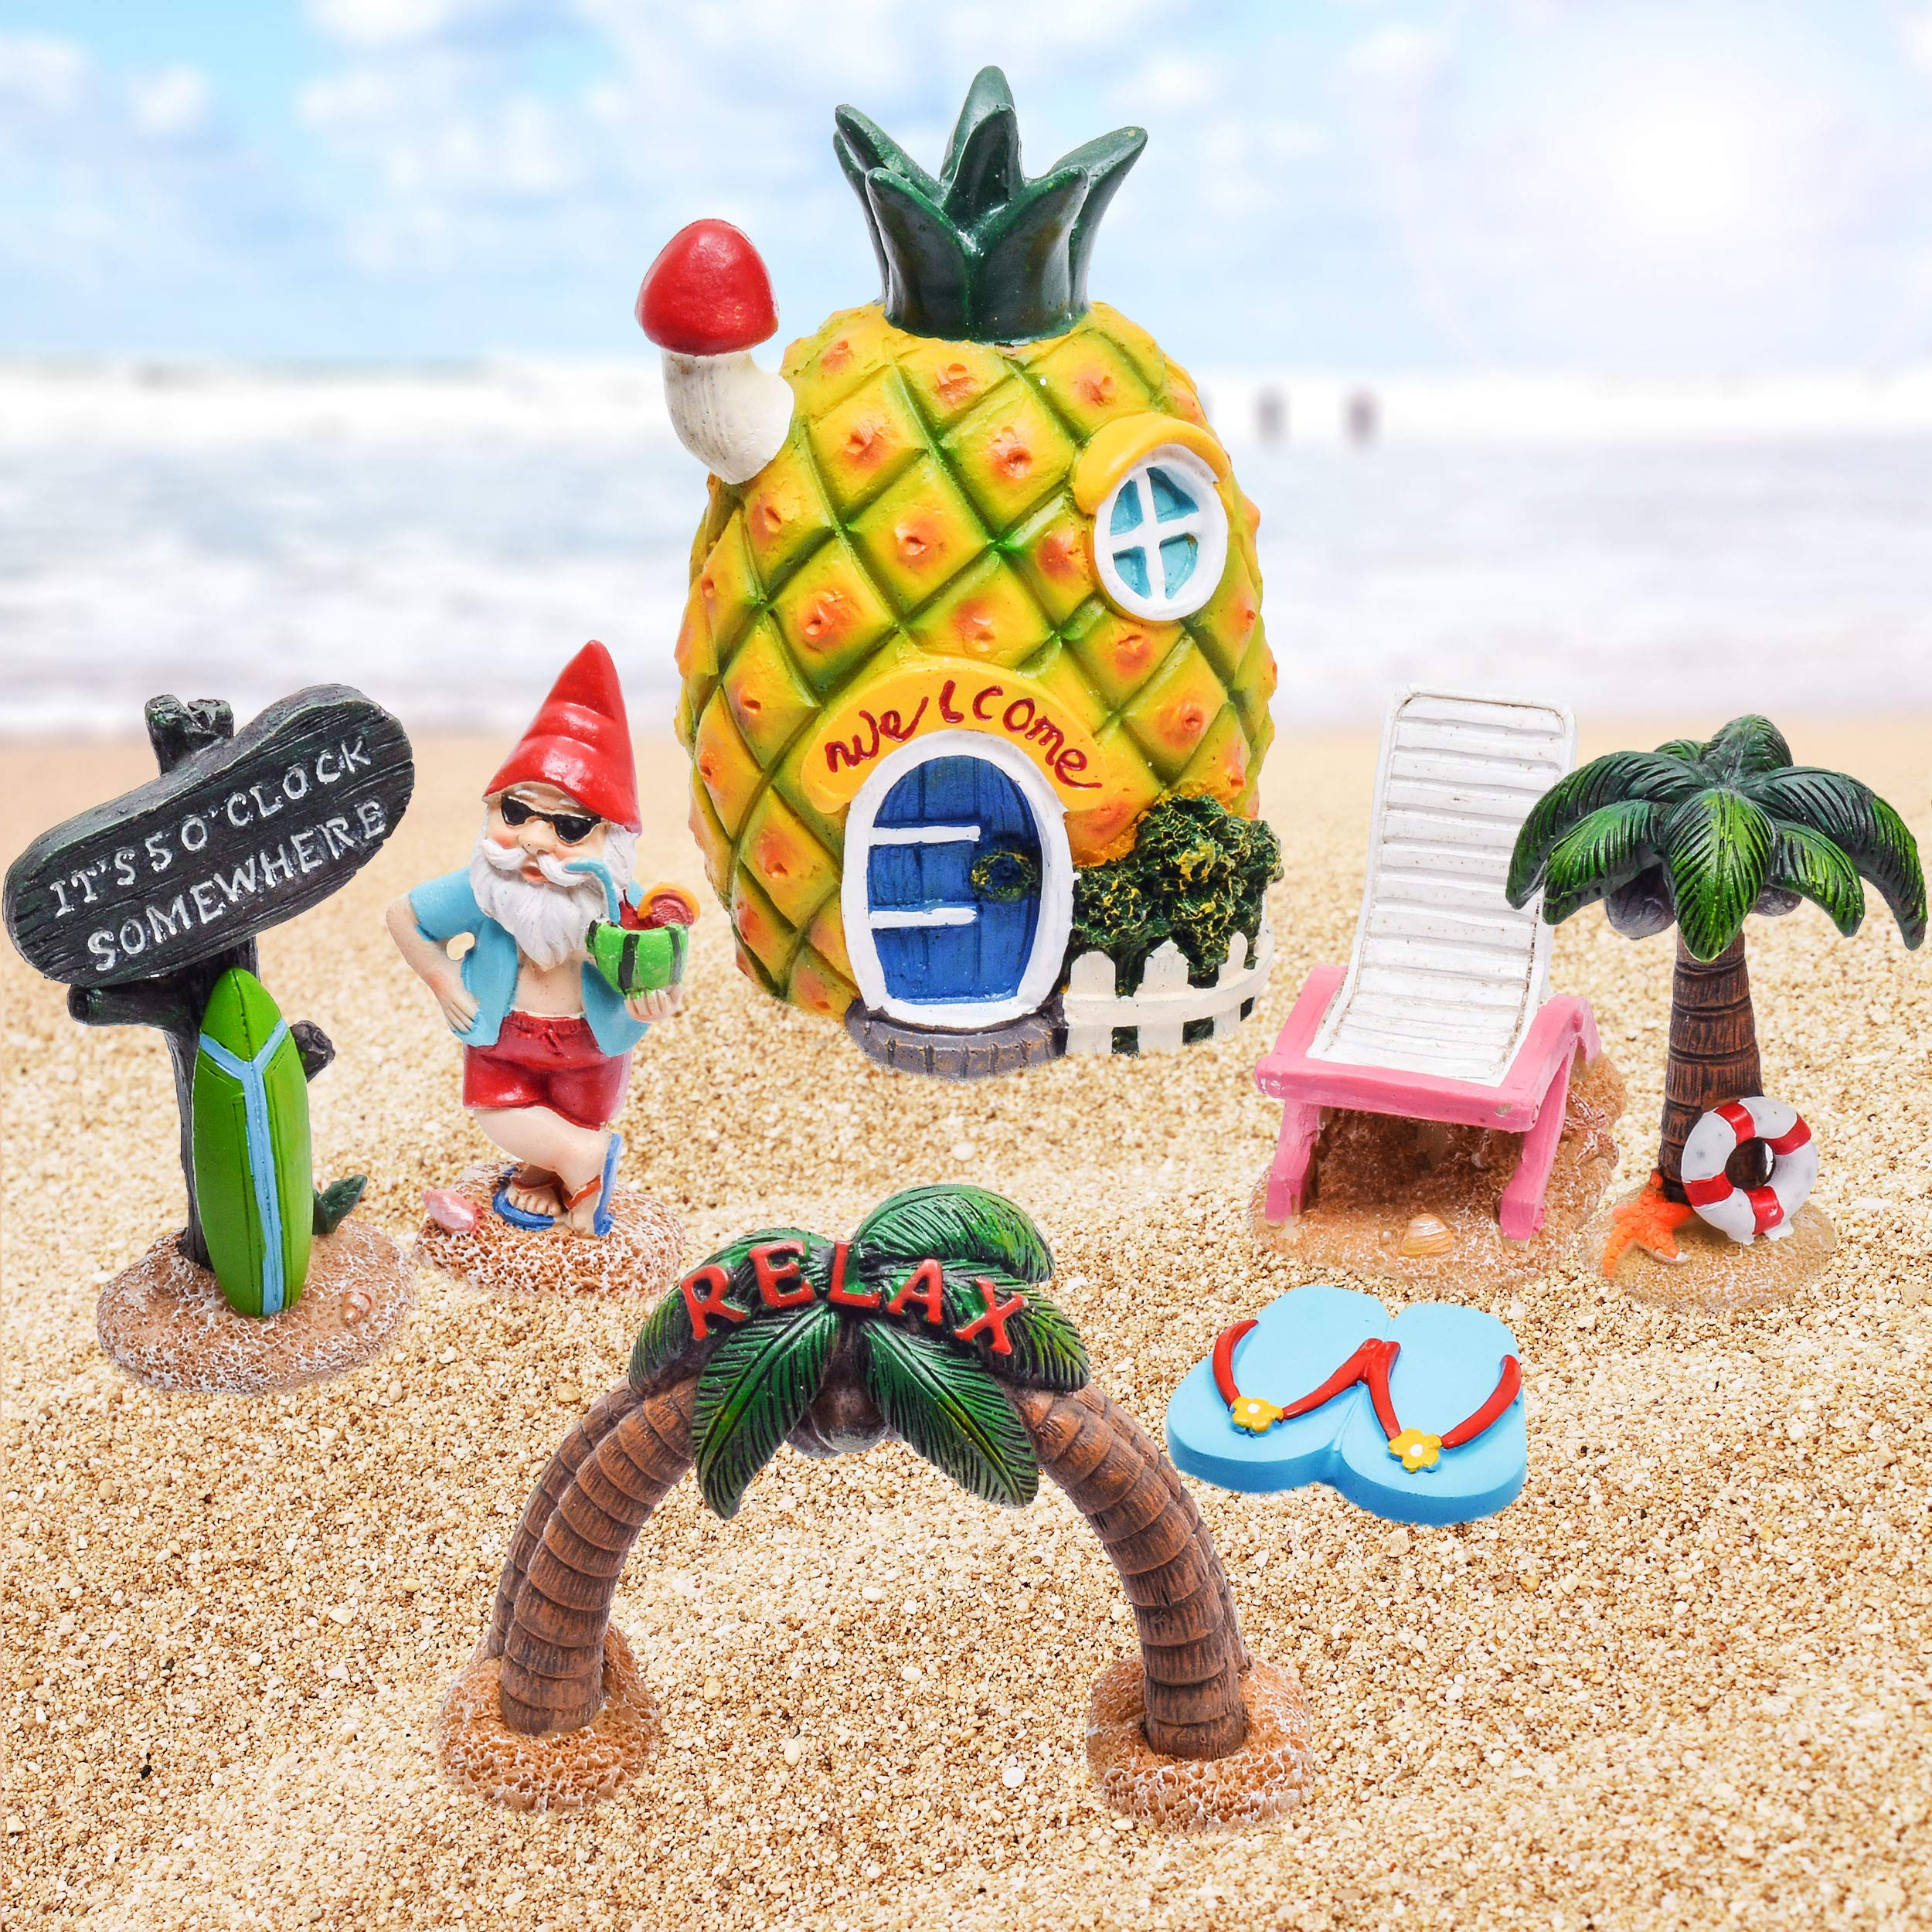 Teresa's Collections 7 Pcs Fairy Garden Accessories Kit-Miniature Pineapple Fairy House Garden Statue Figurines for Outdoor Yard Decorations